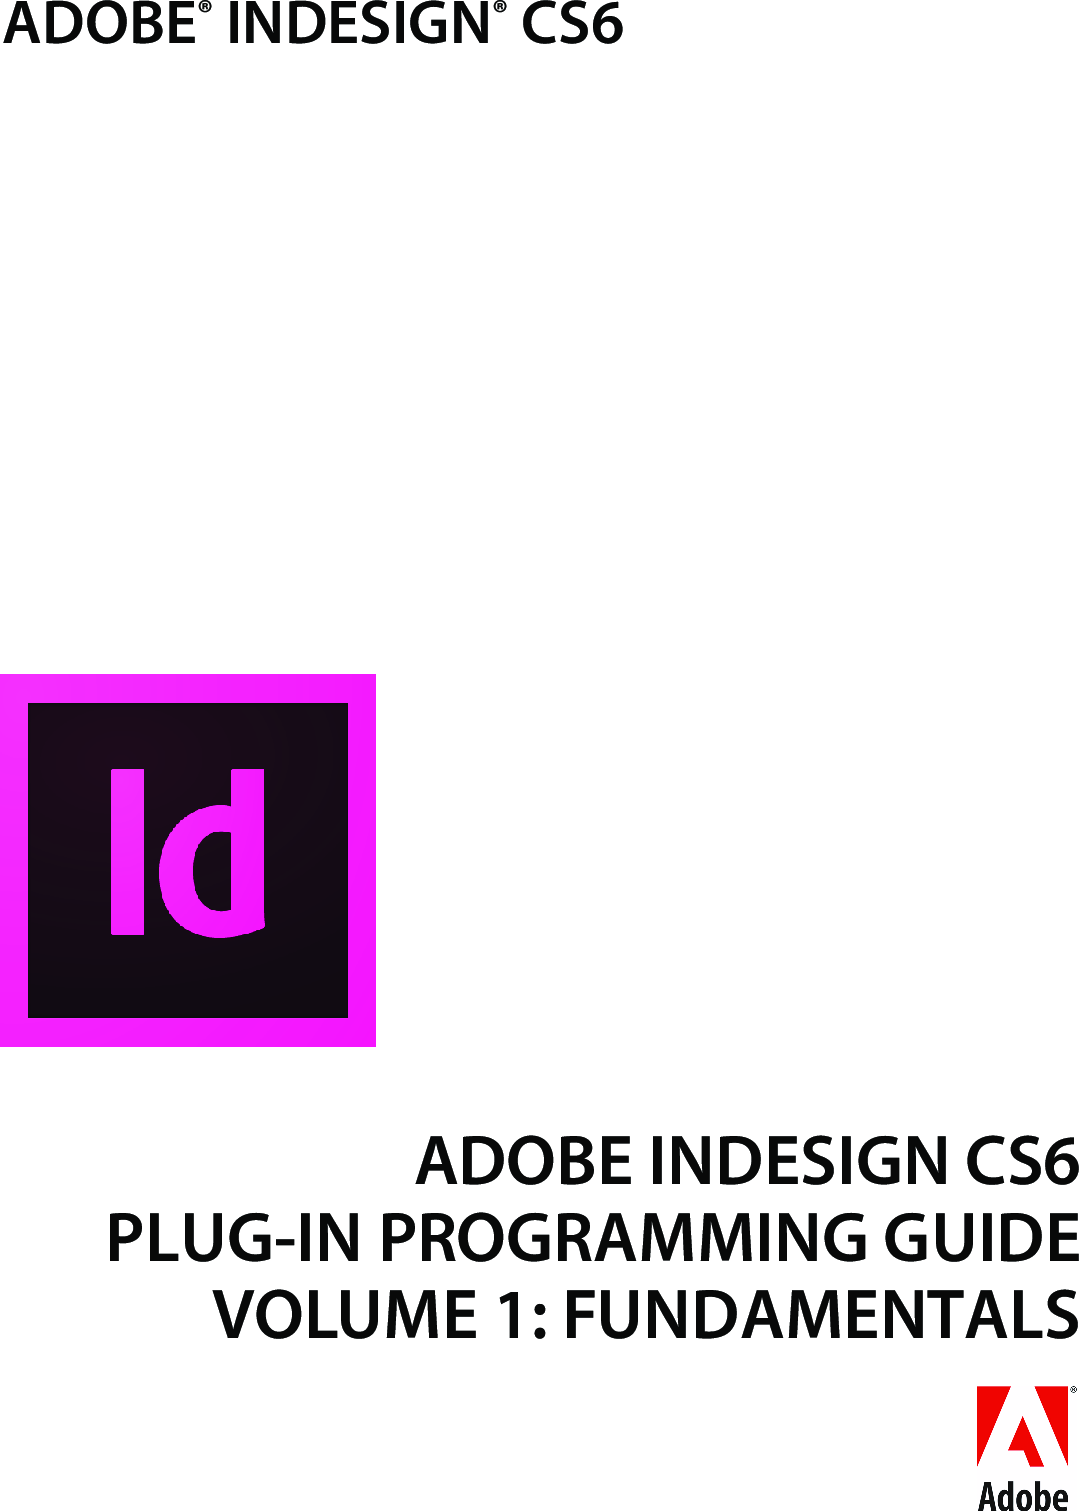 Adobe InDesign CS6 Products Programming Guide Volume 1